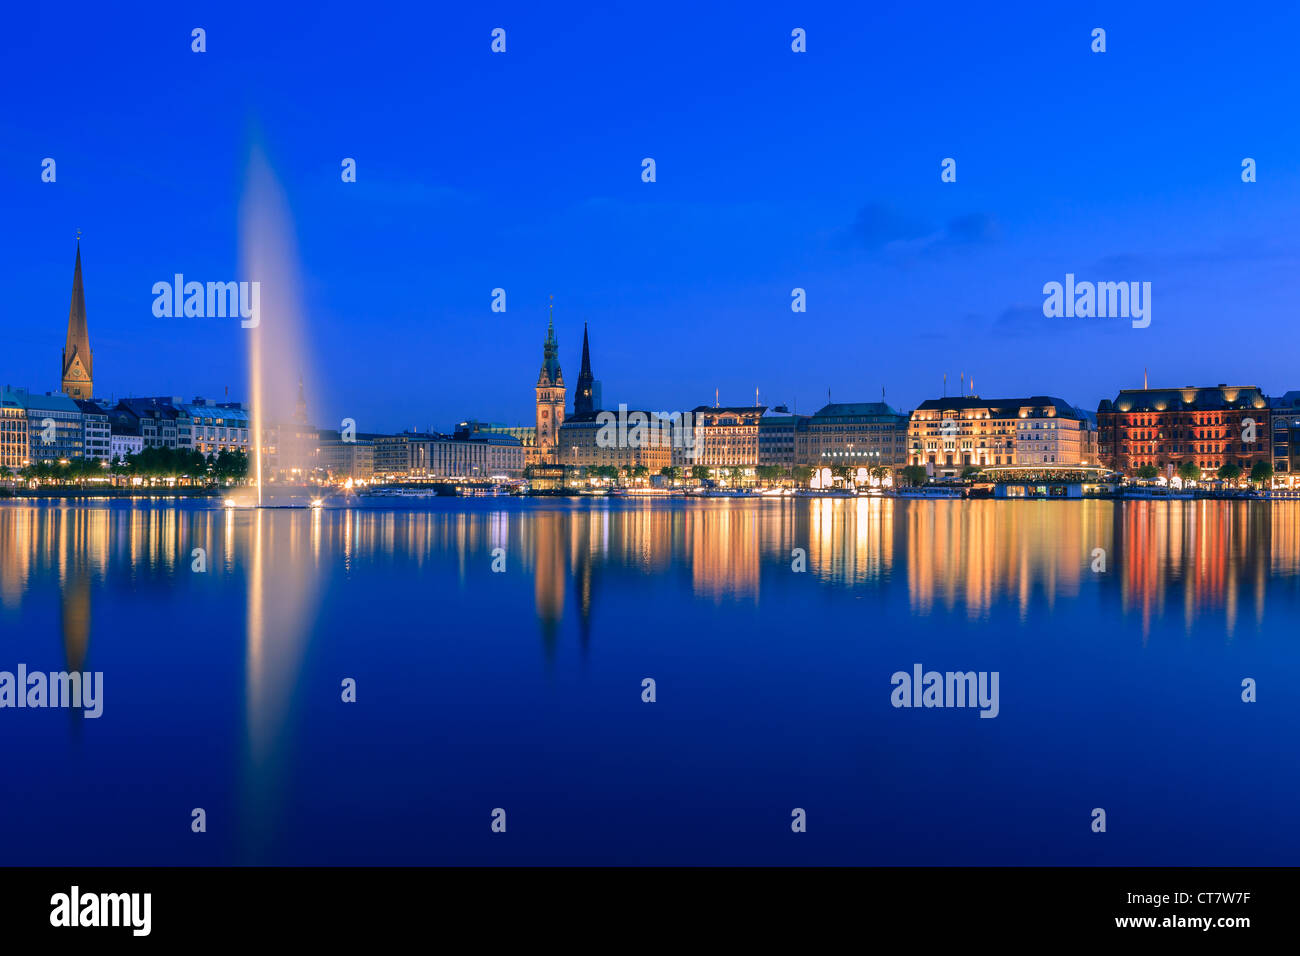 Hamburg skyline taken right after sunset at the blue hour over the binnenalster. - Stock Image